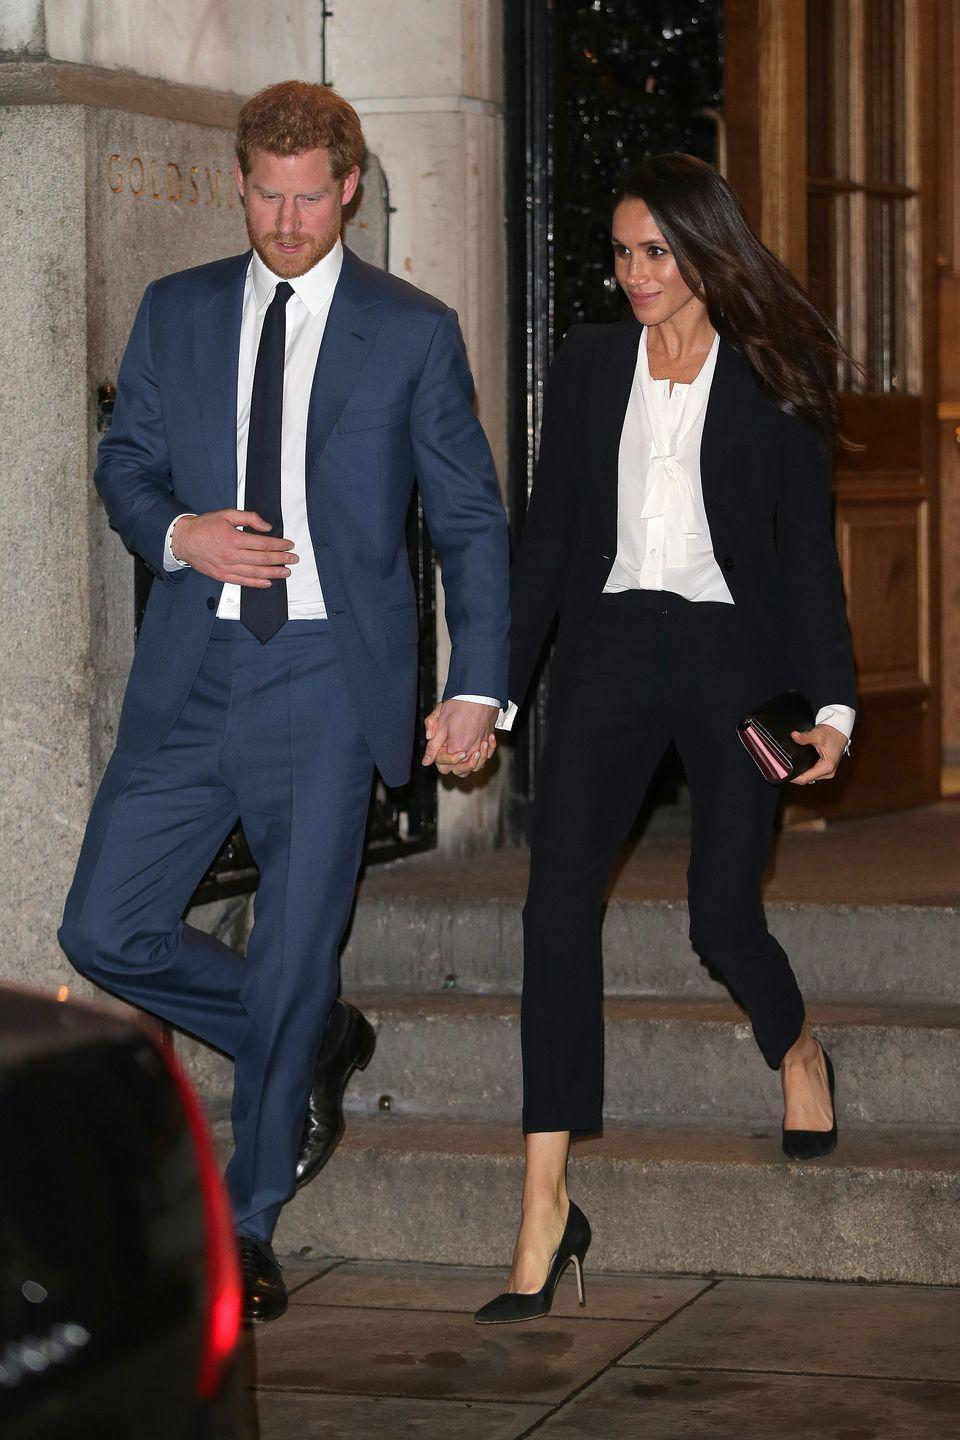 """<p>Meghan looked super fashion-forward (like she always does, TBH) when she stepped out in this Alexander McQueen suit in February 2018. But perhaps more notable than her chic pantsuit was the fact that her white blouse was actually a BODYSUIT (!!!) <a href=""""https://www.tuxebodywear.com/"""" rel=""""nofollow noopener"""" target=""""_blank"""" data-ylk=""""slk:by the brand Tuxe"""" class=""""link rapid-noclick-resp"""">by the brand Tuxe</a>. </p>"""